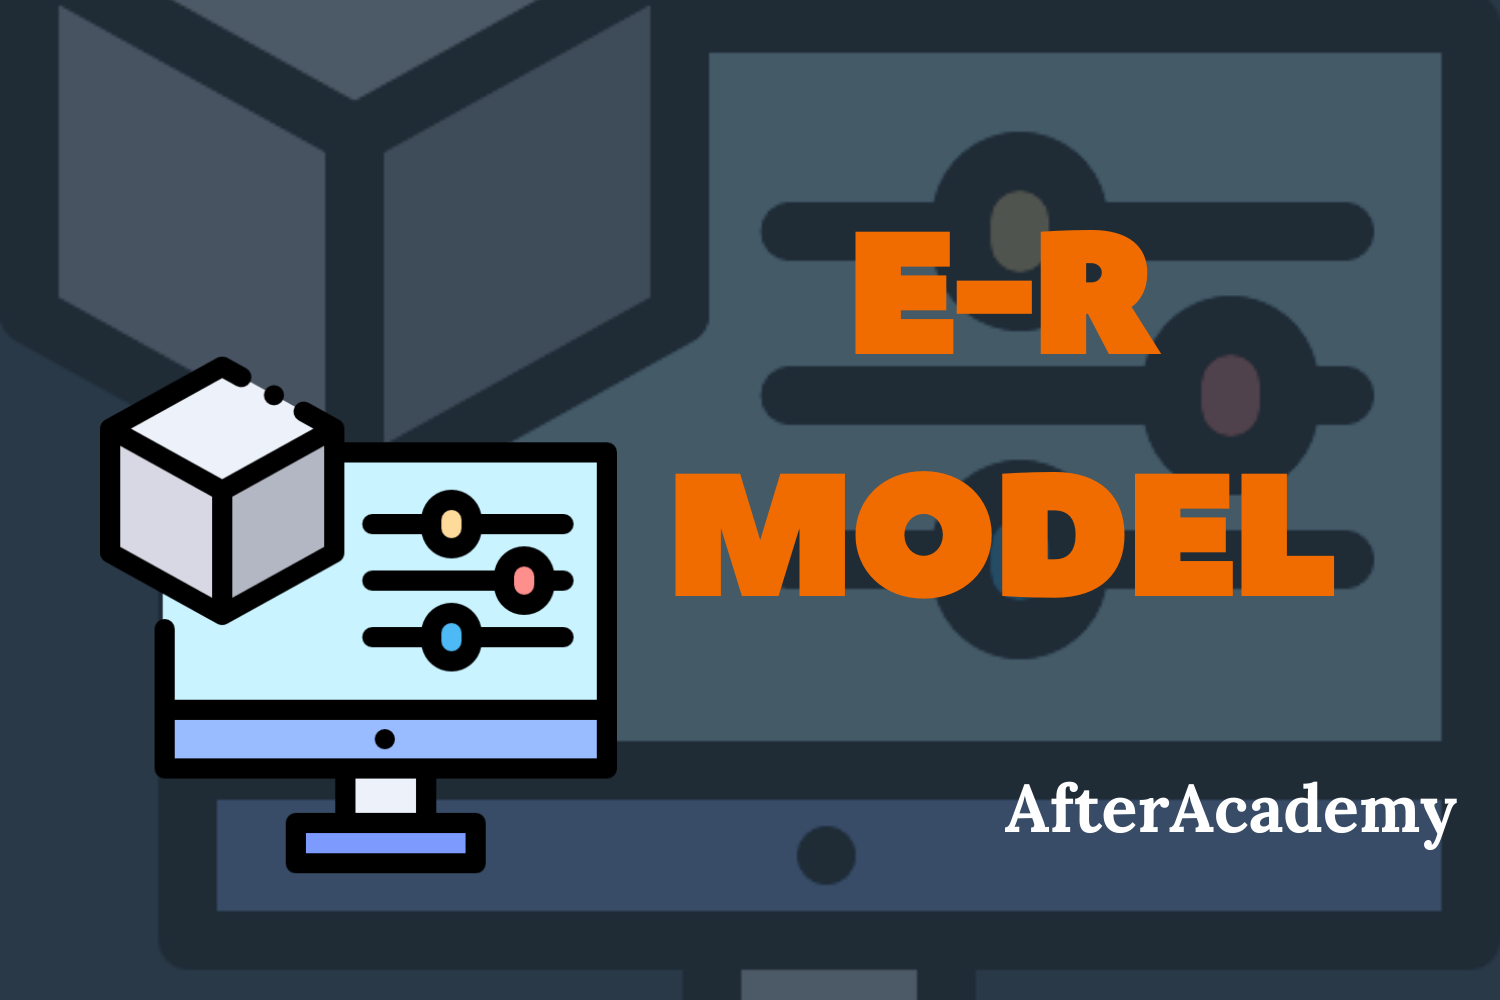 What is an E-R model?